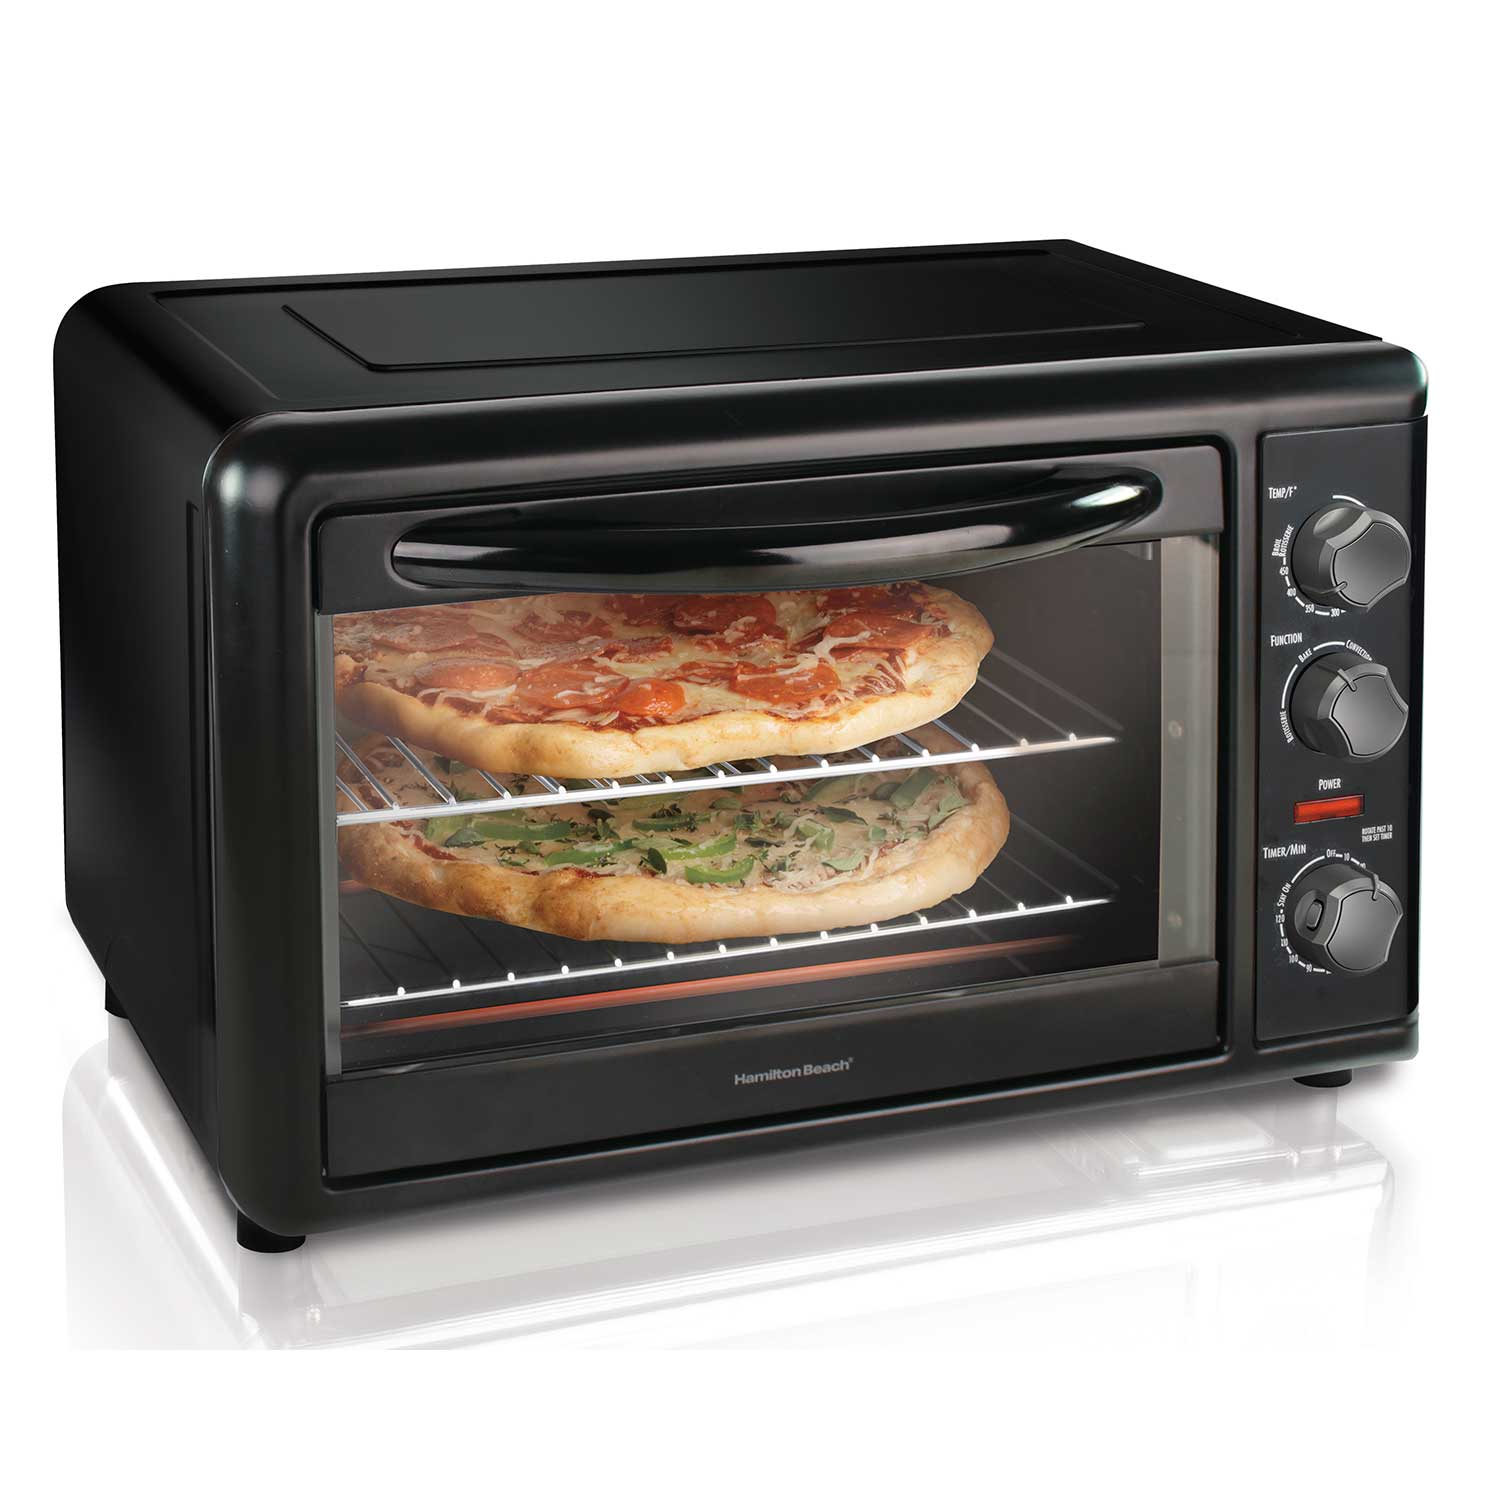 Countertop Oven with Convection and Rotisserie (Black) (31101D)